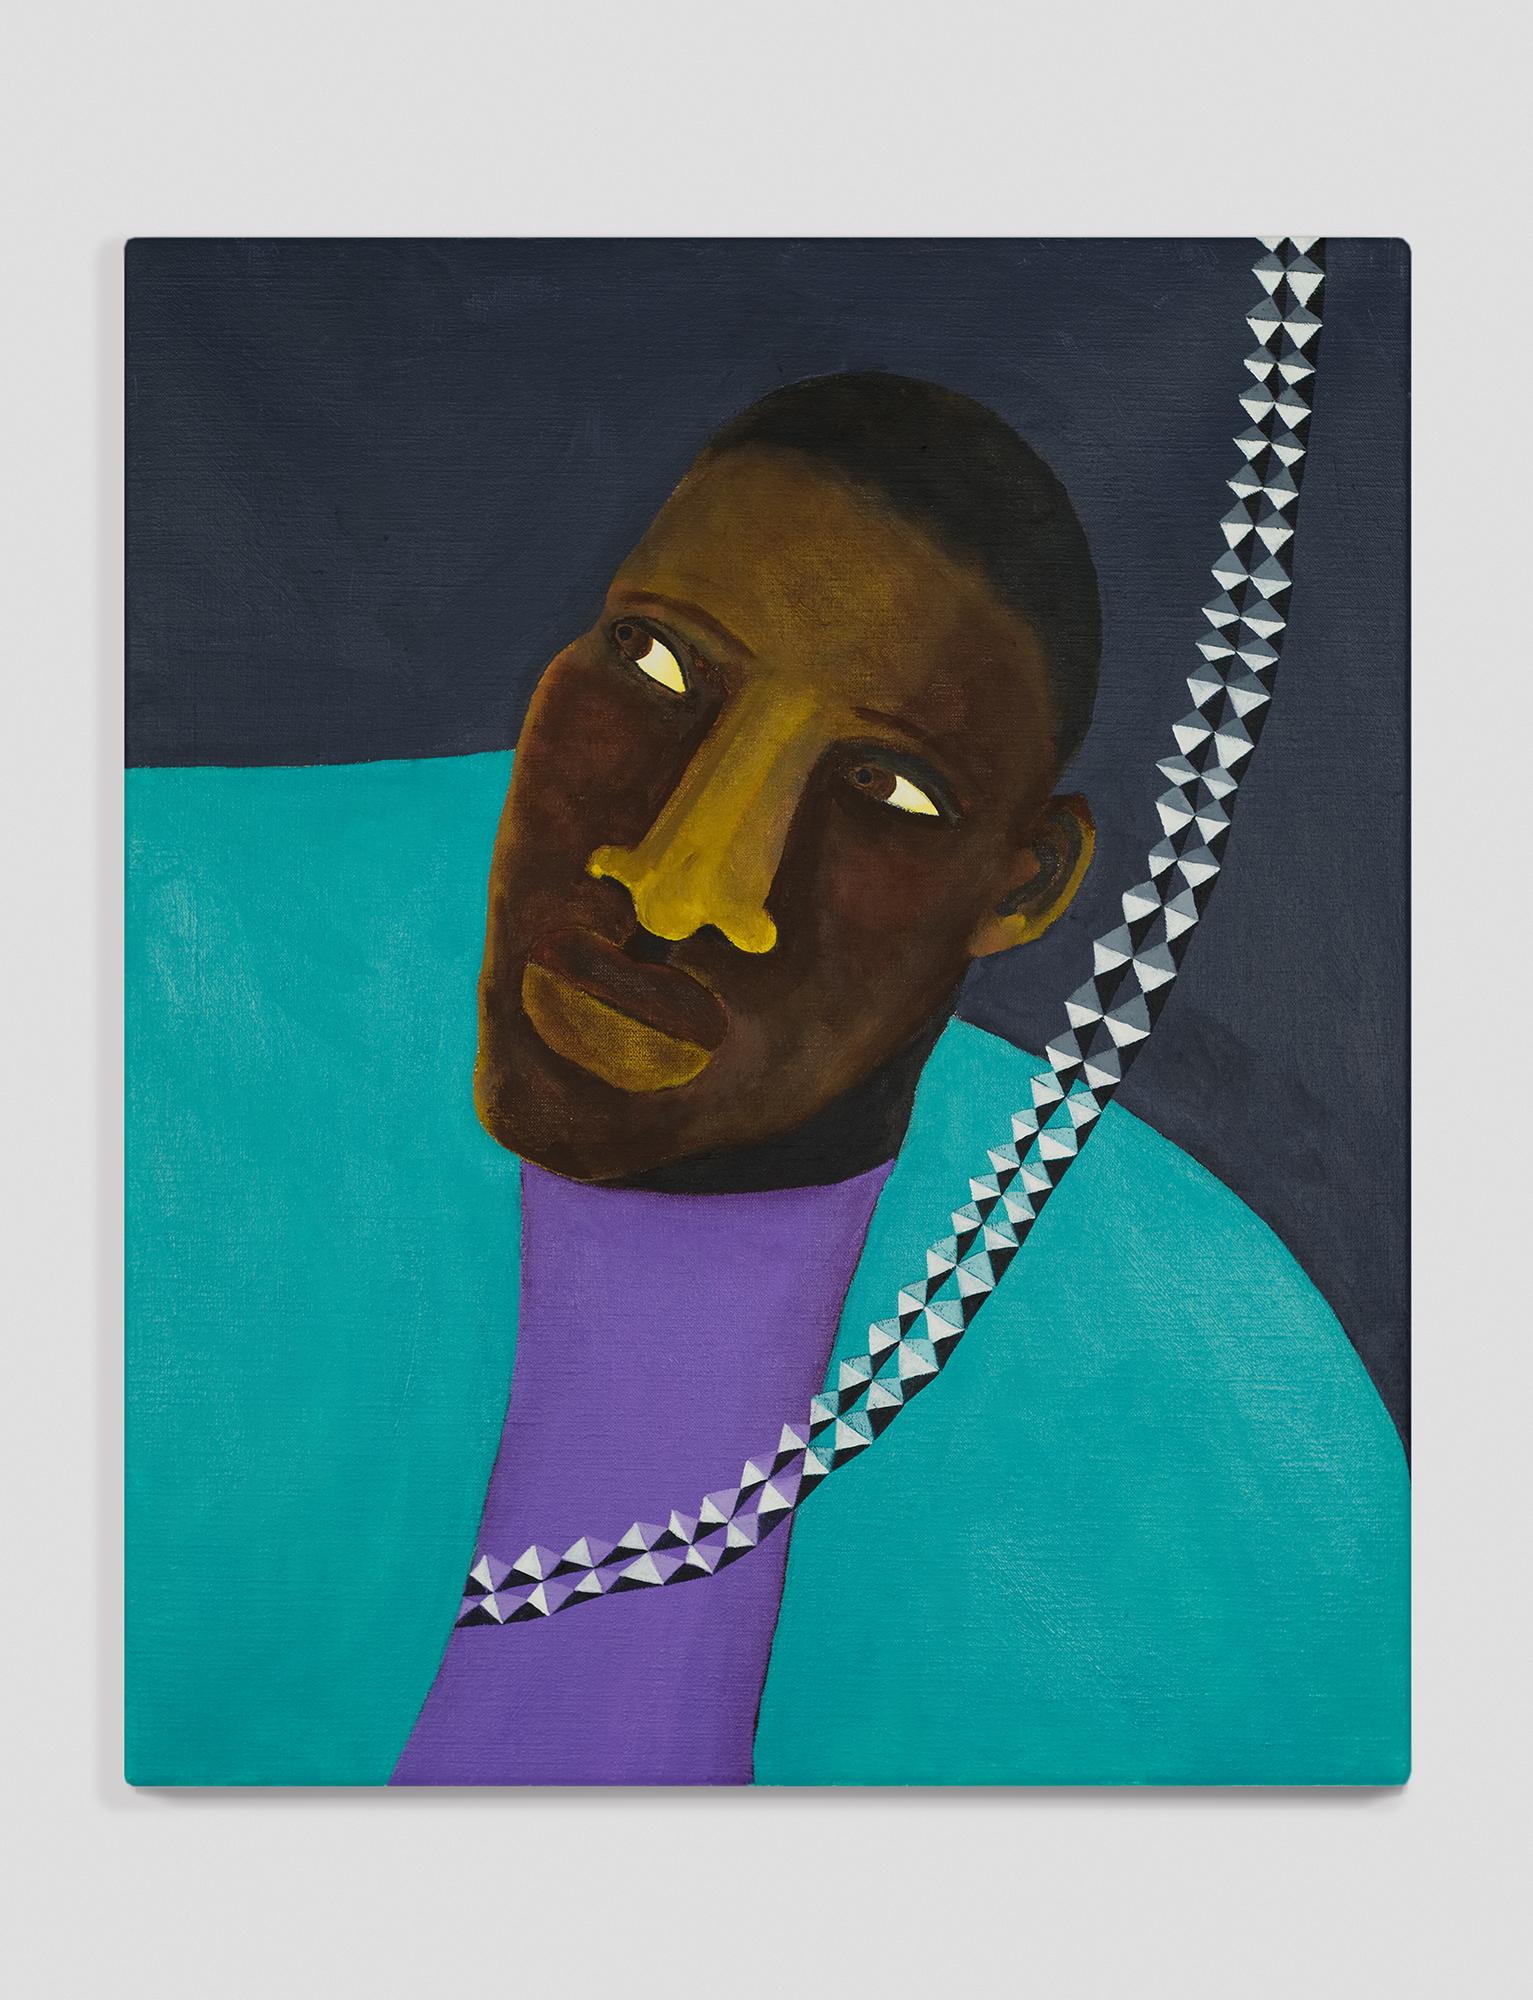 12.05.21 – Lubaina Himid in conversation with Rebecca Lyons, Royal Academy of Arts